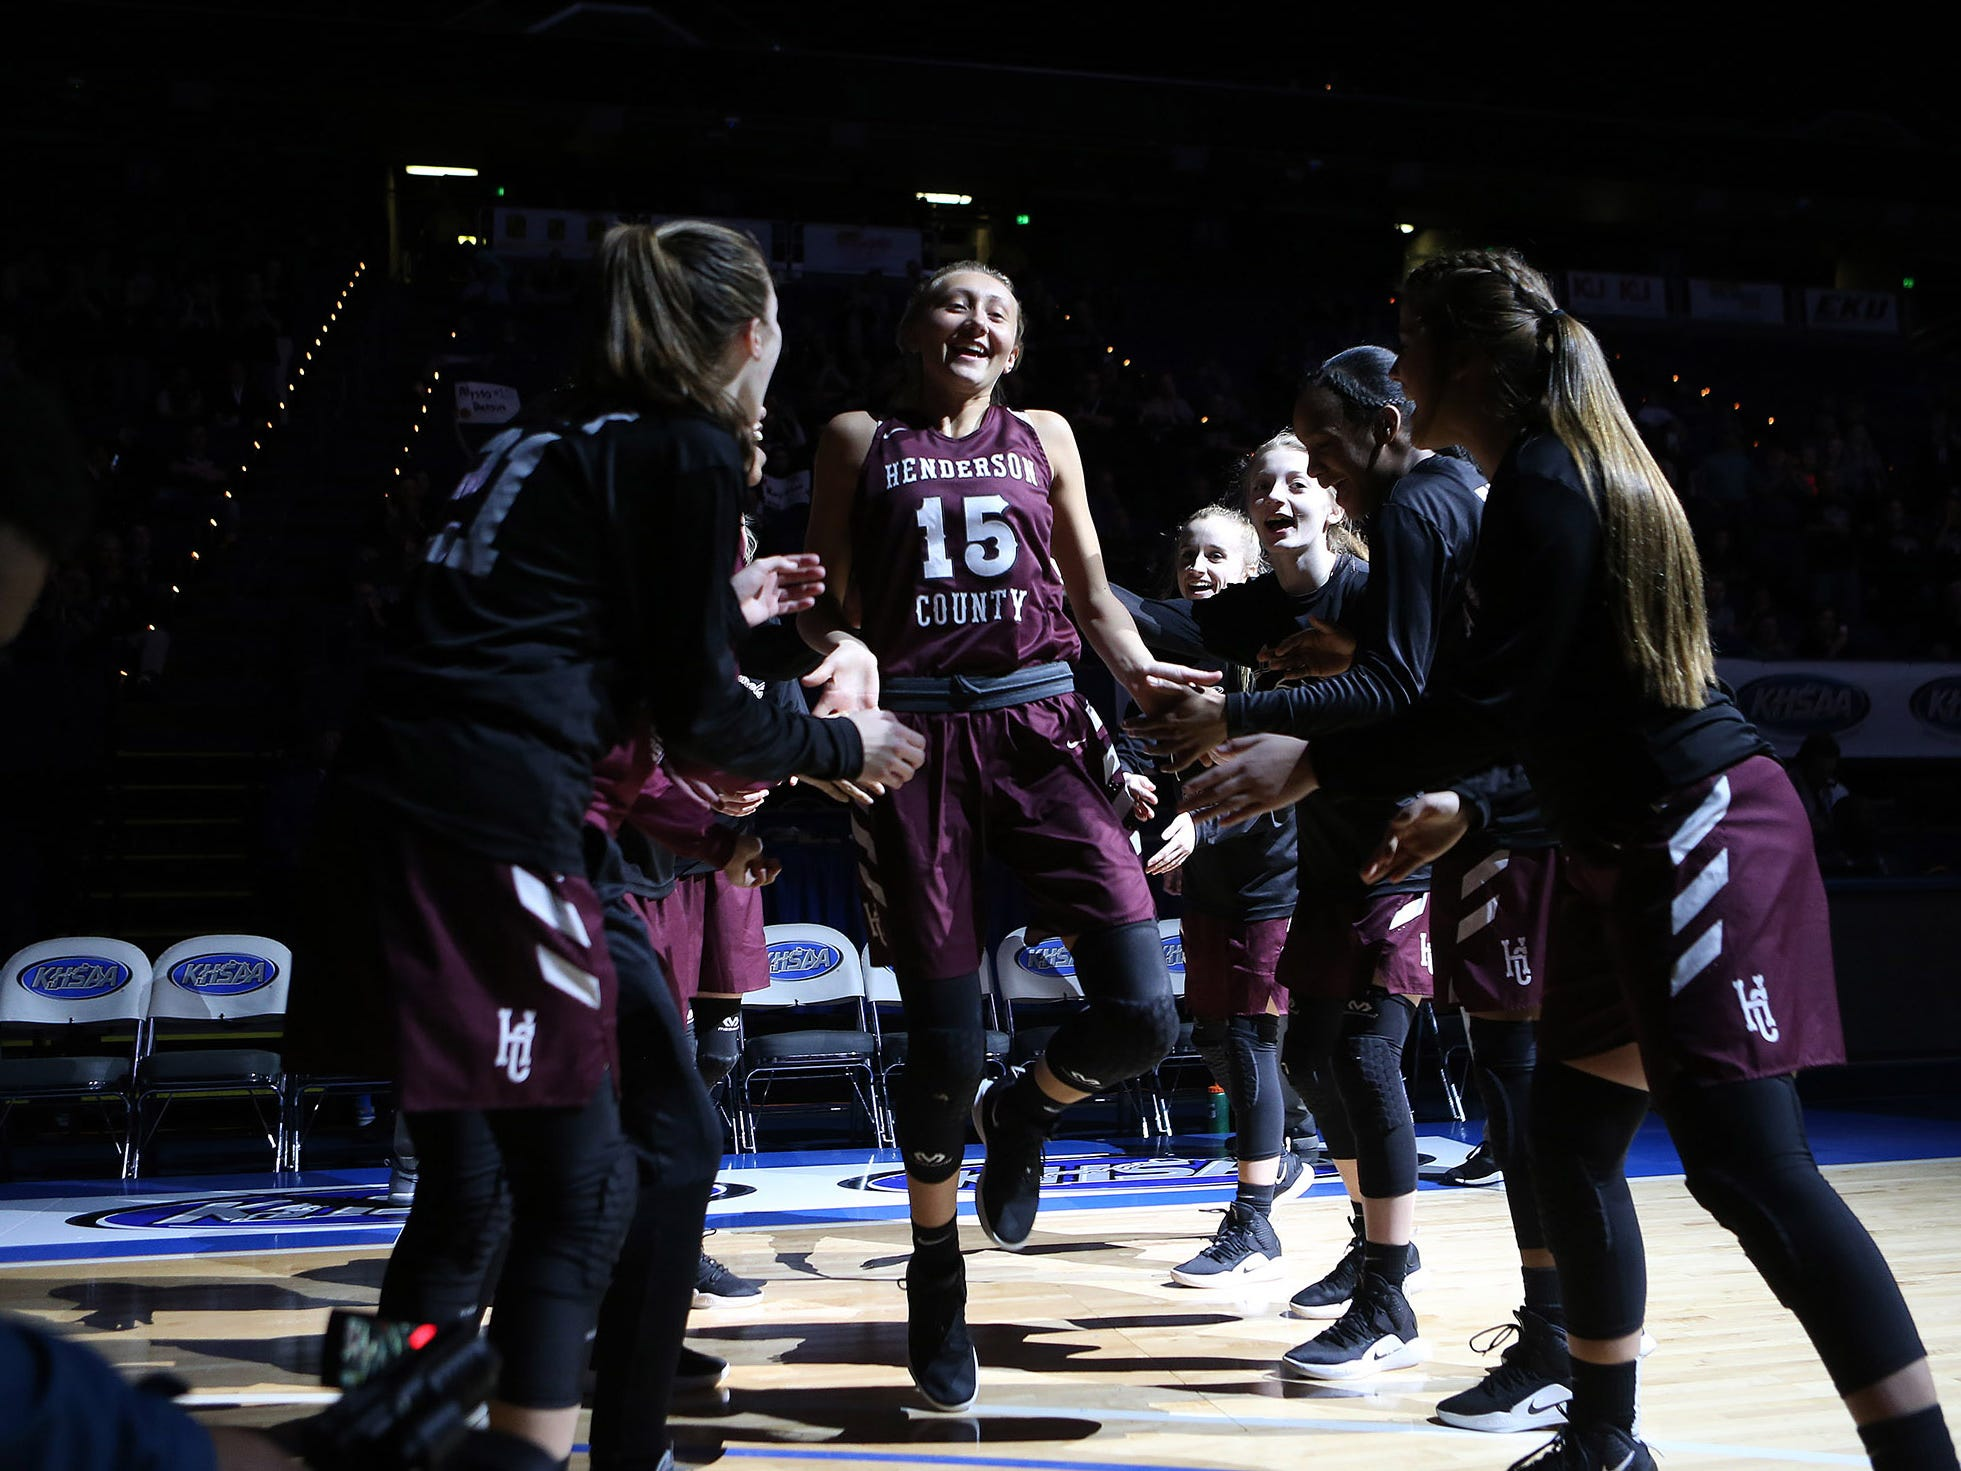 Henderson County's Alyssa Dickson slapped hands with teammates during introduction of starting lineups Friday against North Laurel in Game 8 of the KHSAA Girls' Sweet 16 at Rupp Arena in Lexington.